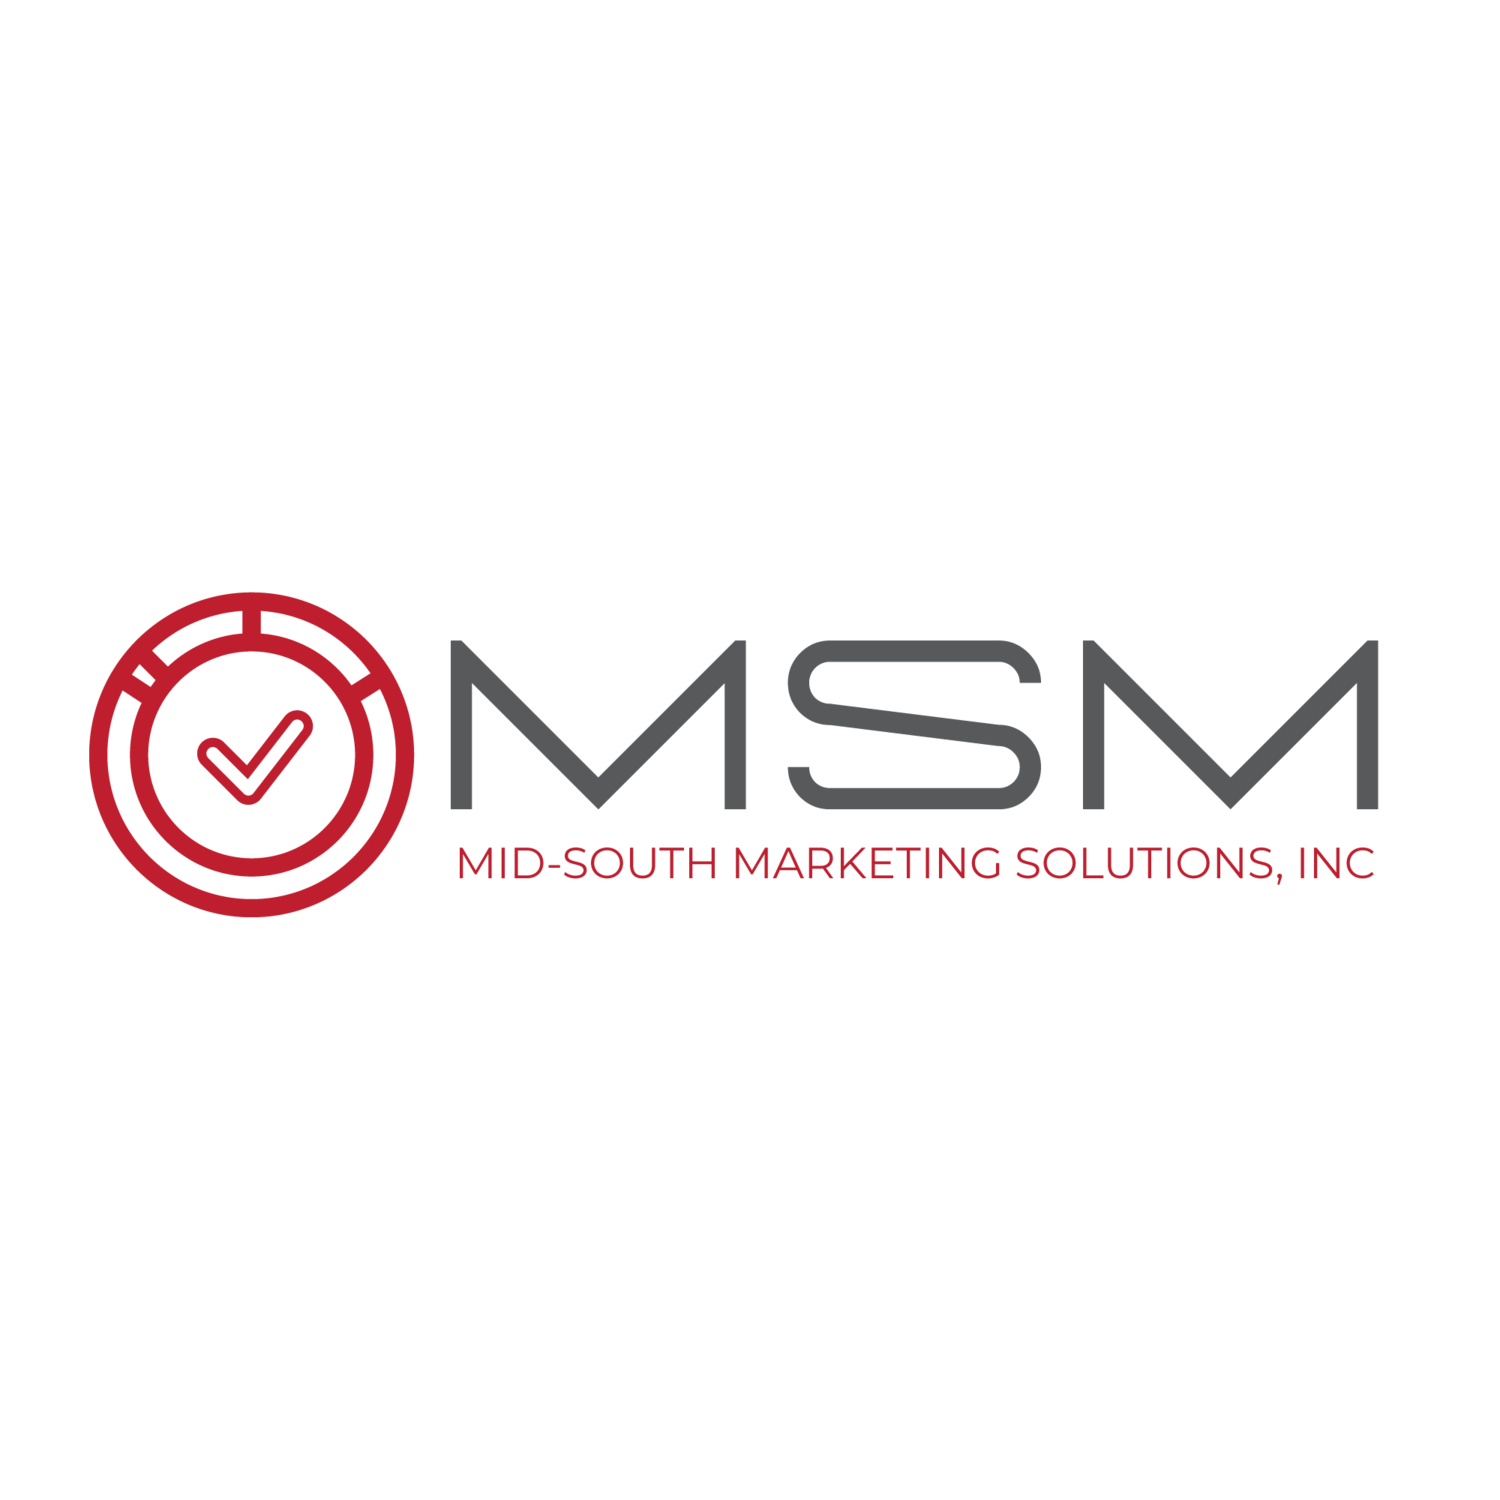 Mid-South Marketing Solutions, Inc.